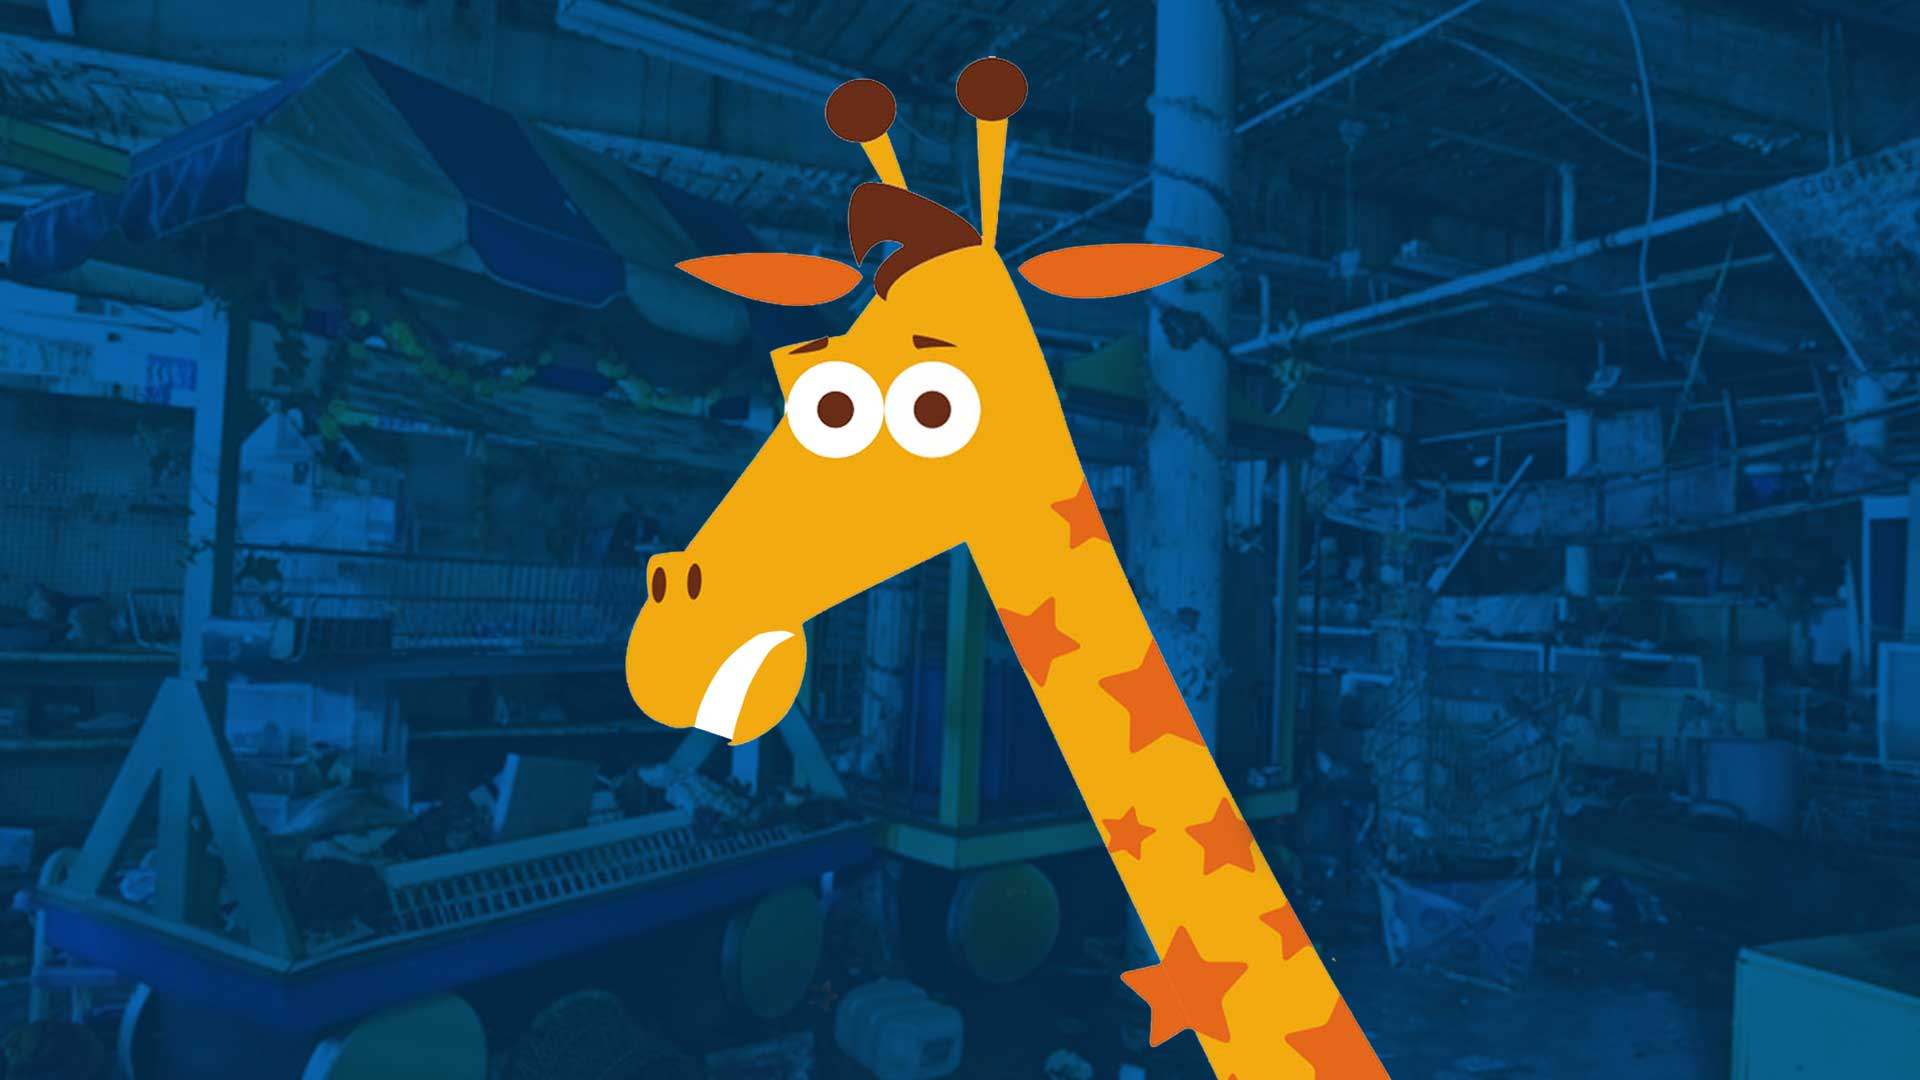 The Toys R Us Closing story - image contains a cartoon jiraffe over a blue background